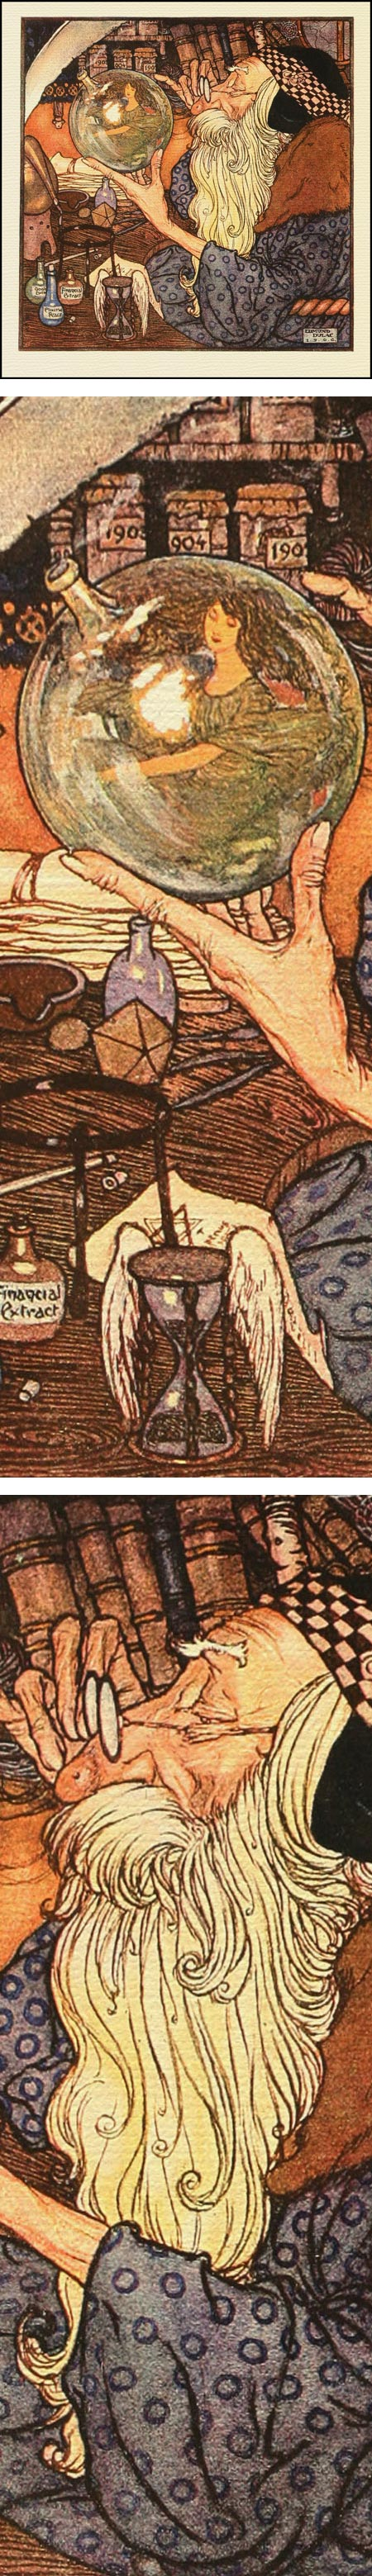 Father Time, Edmund Dulac